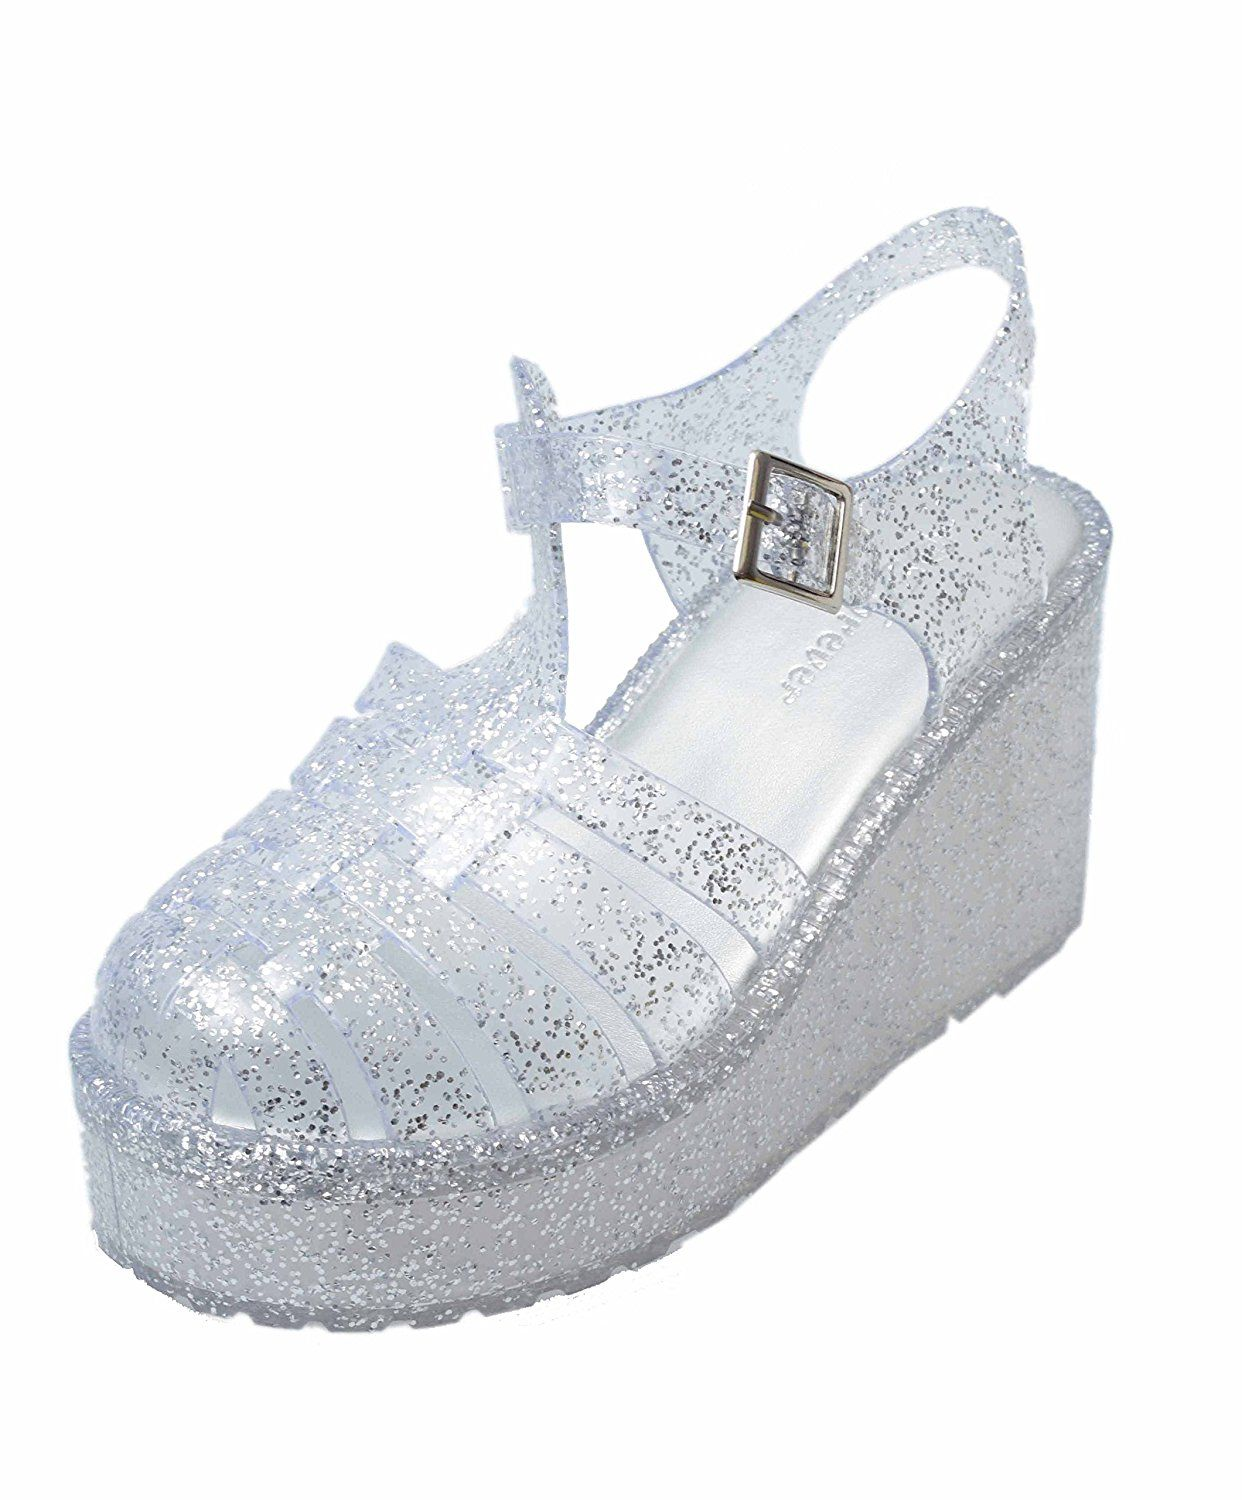 132f2f5ee7d Forever Womens T-Strap Closed Round Toe Jelly Flatform Platform Sandals  Adjustable Strap Casual Comfort Shoes (Clear Glitter) *** Check this  awesome image ...